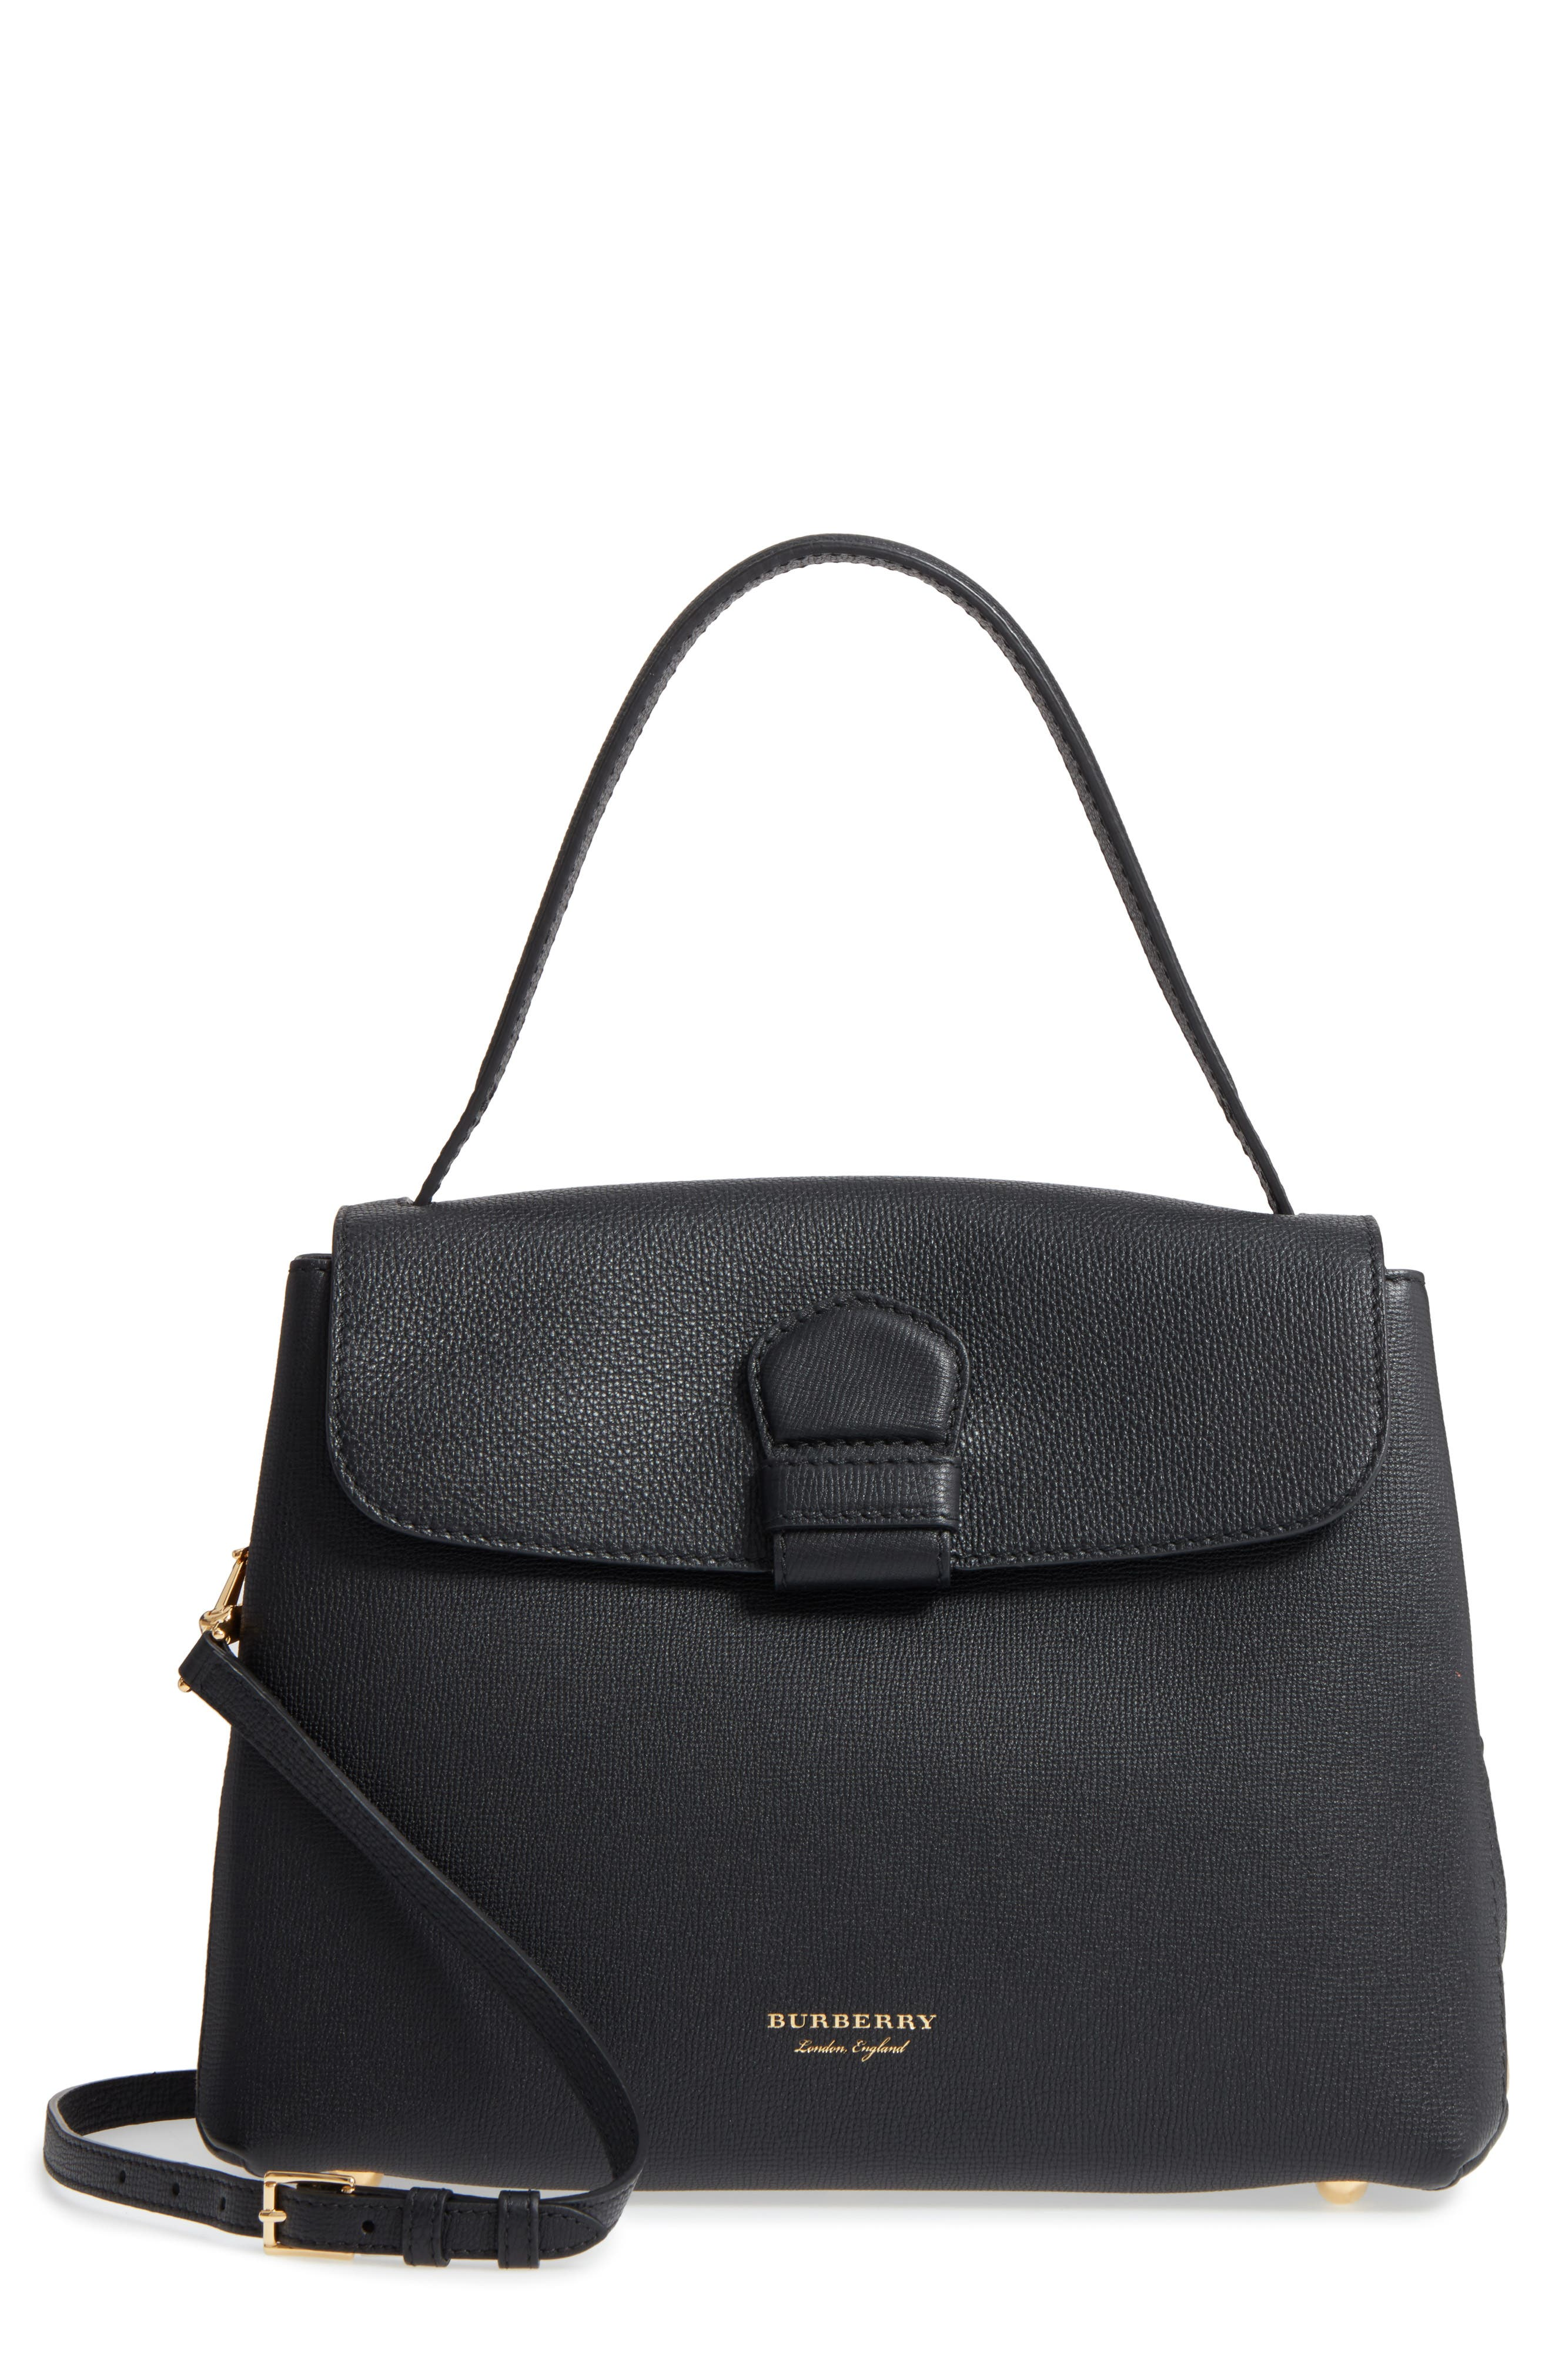 Medium Camberley Leather & House Check Top Handle Satchel,                         Main,                         color, Black